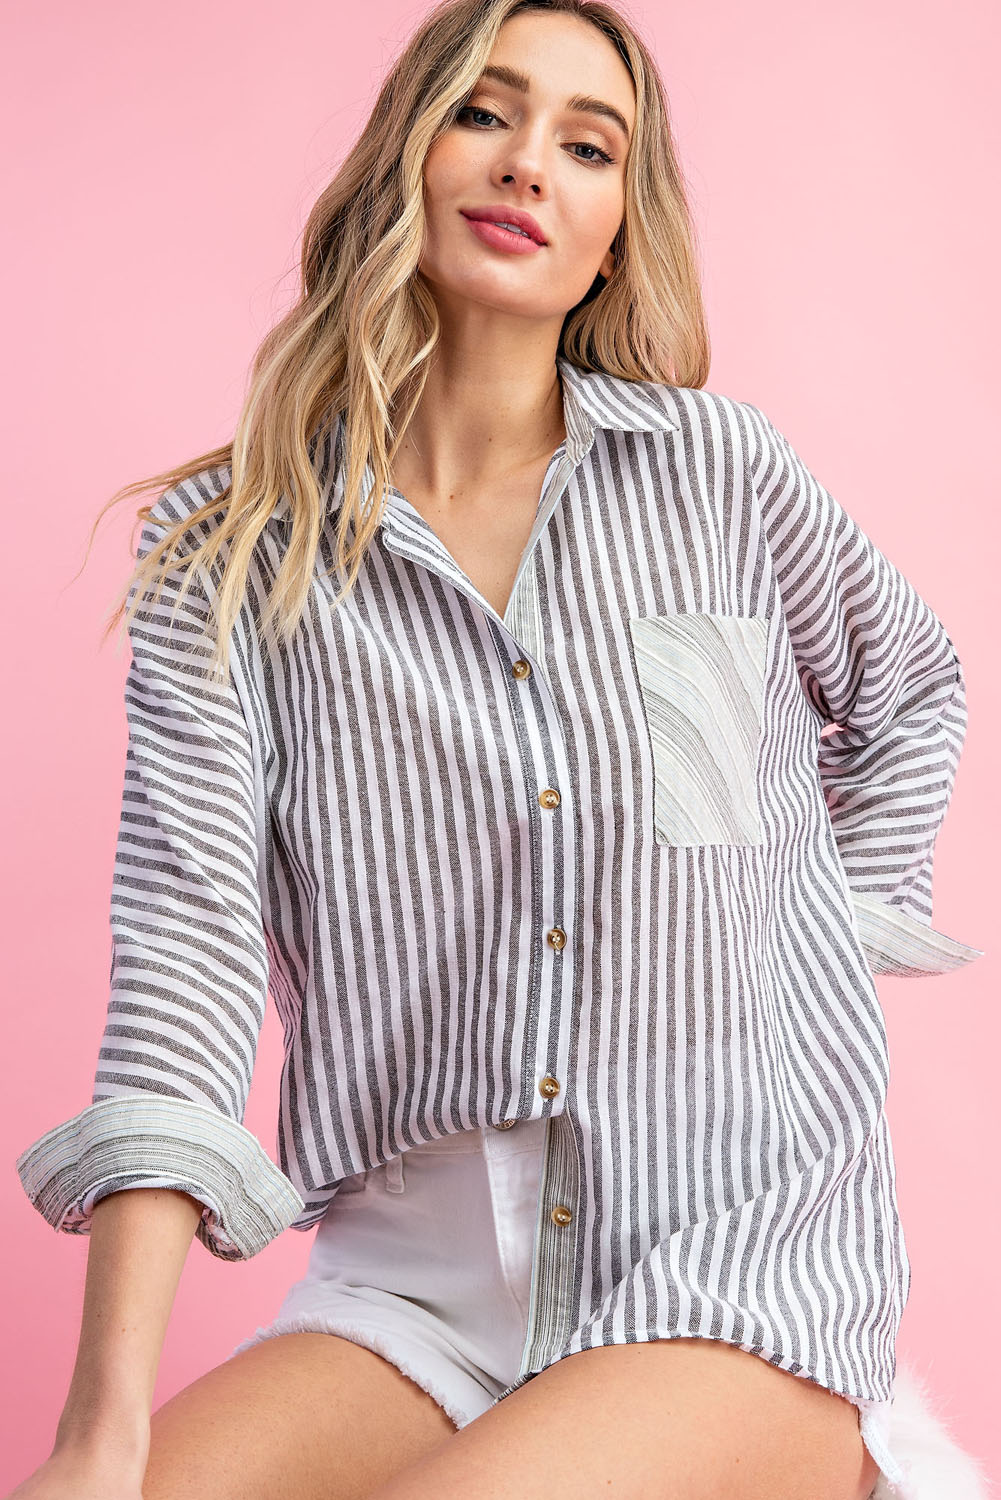 PINSTRIPE BUTTON UP LONG SLEEVE TOP - orangeshine.com